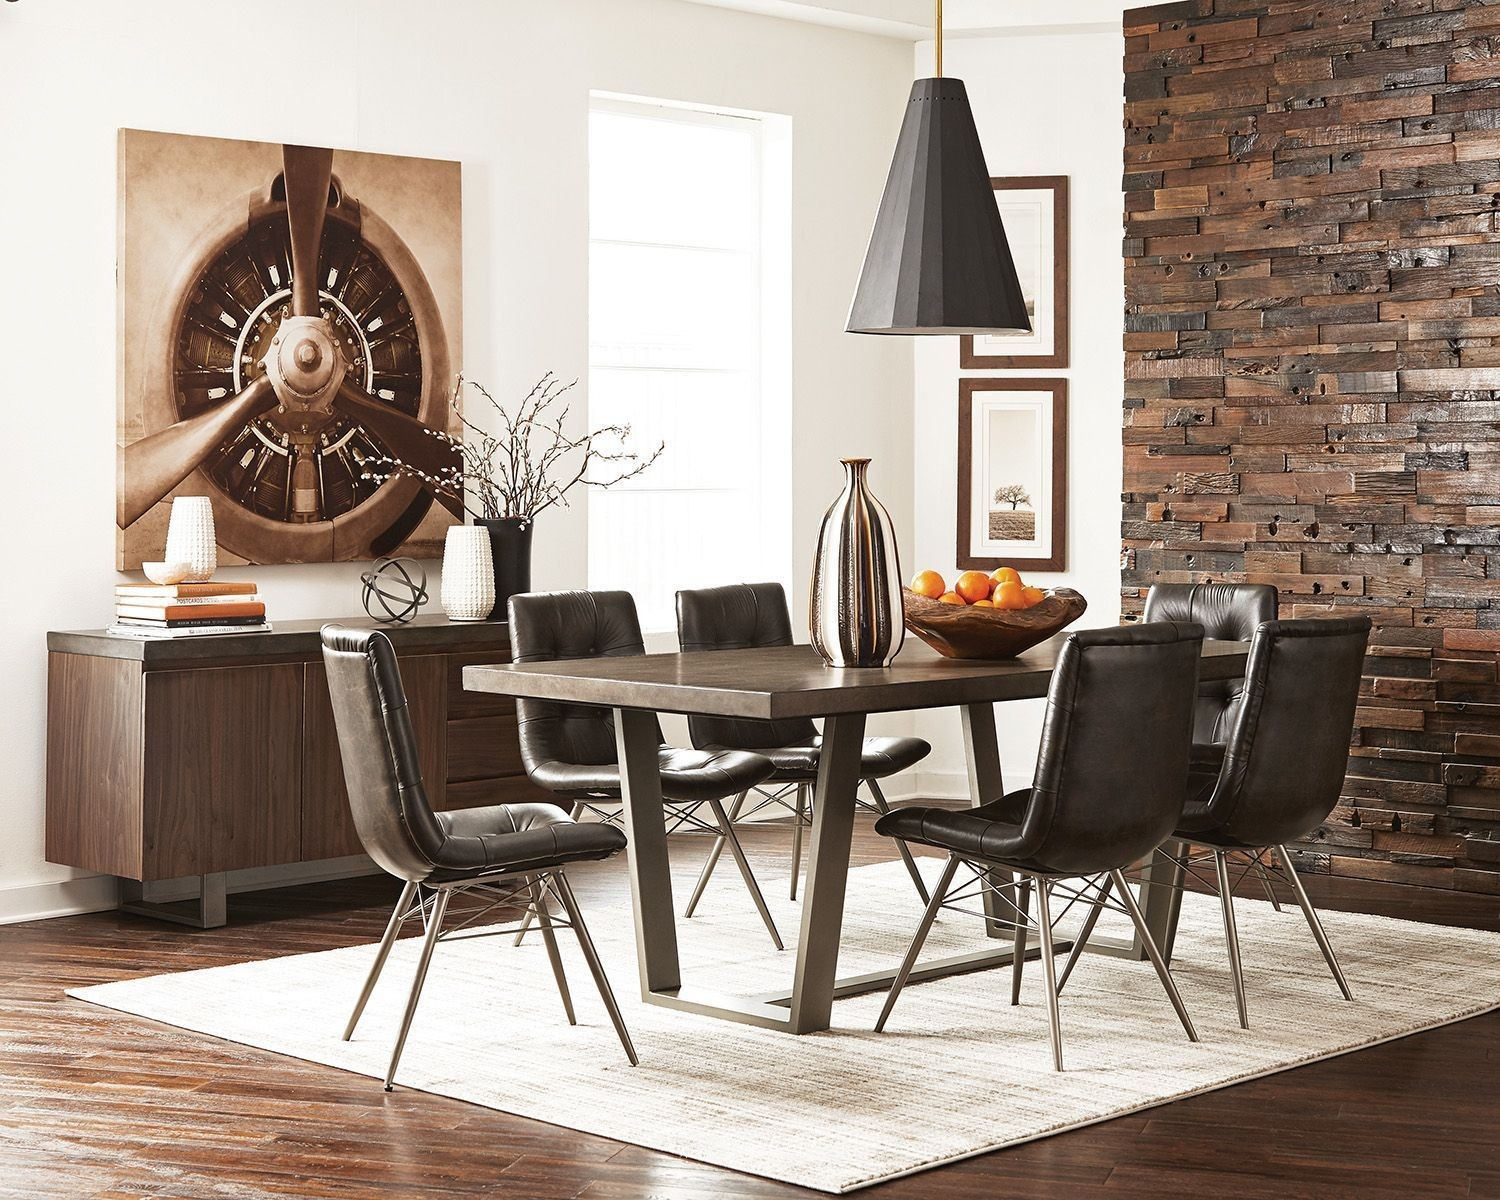 Hutchinson Aged Concrete Dining Room Set By Scott Living